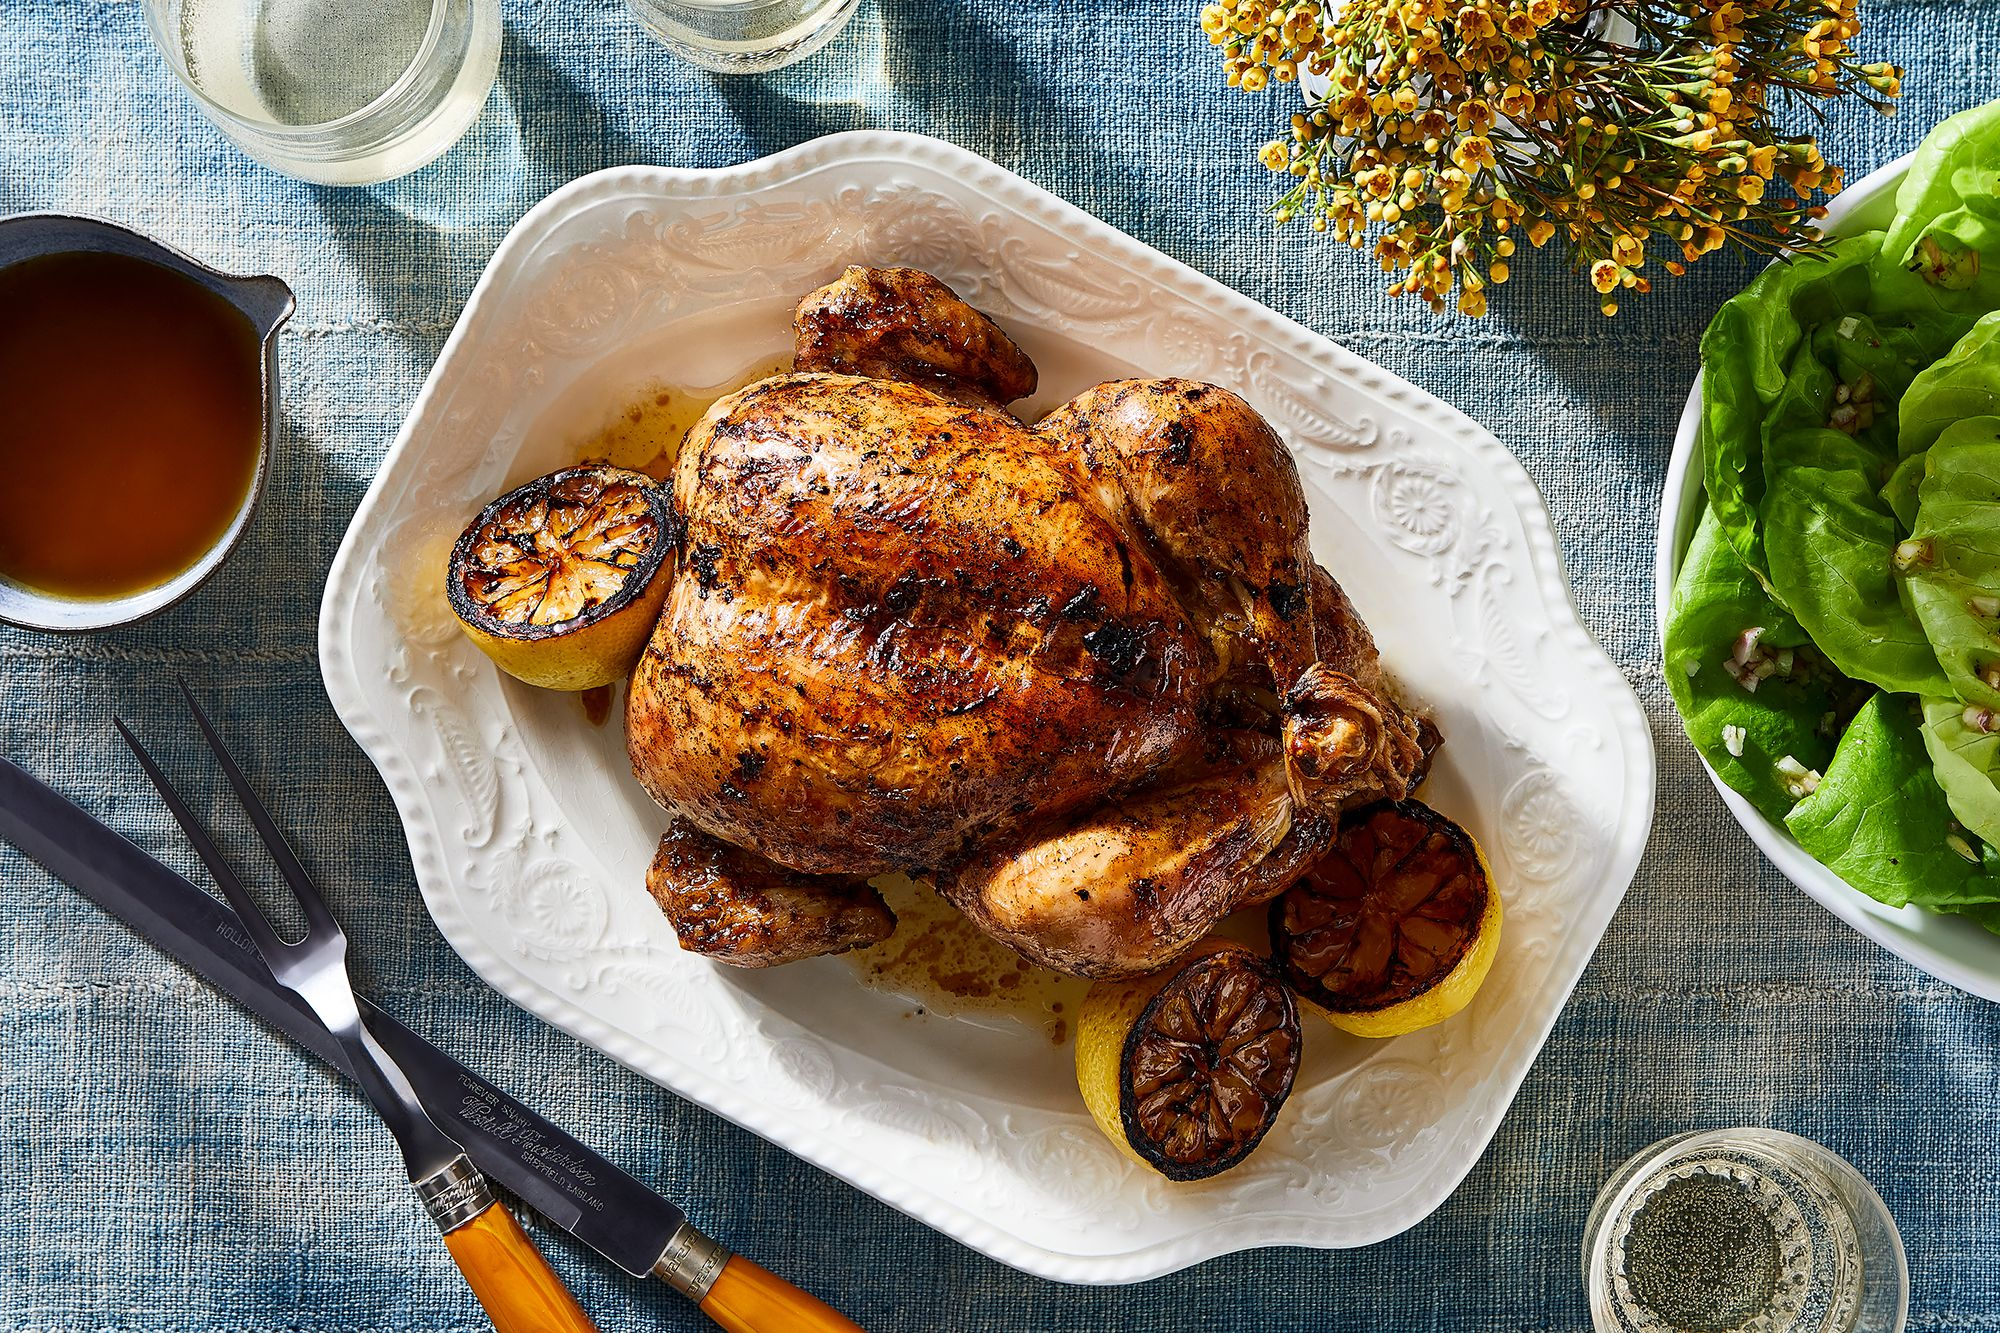 This Roast Chicken Just Jumped to the Top of Our To-Make List